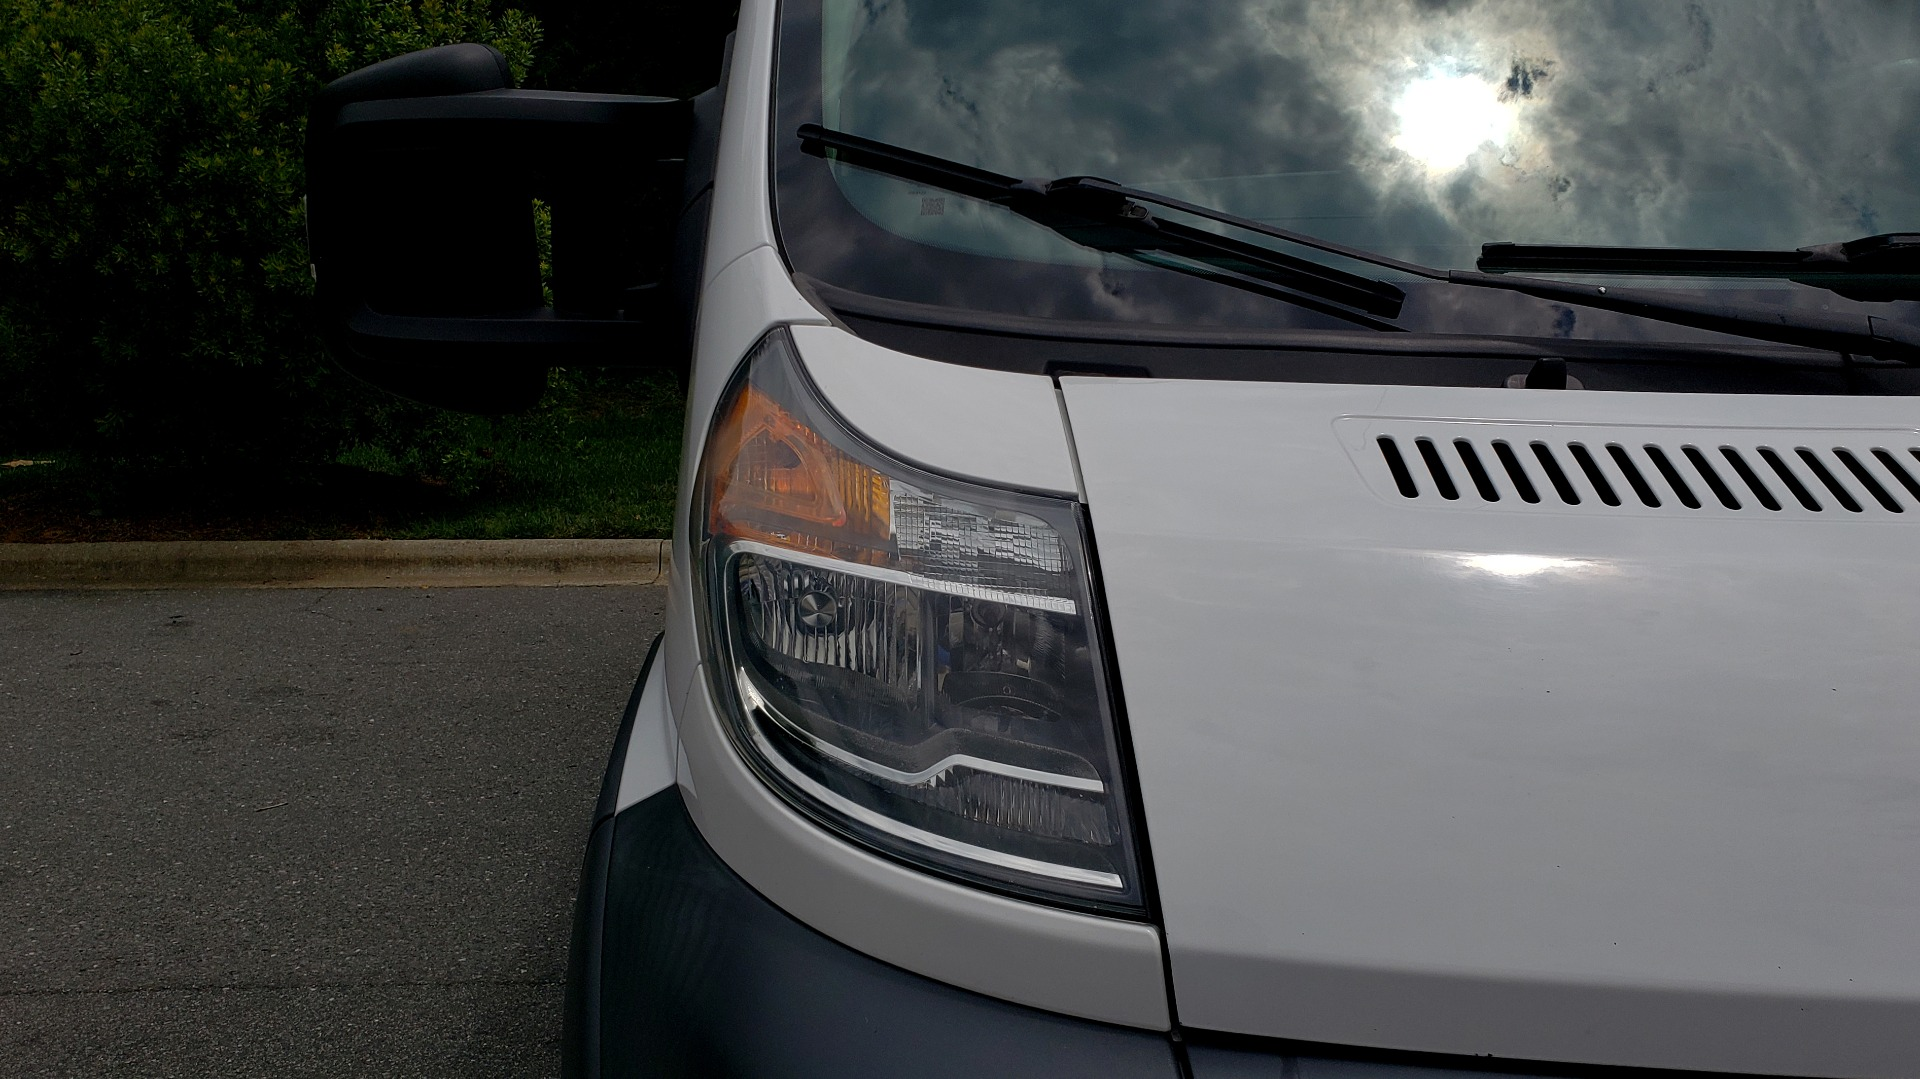 Used 2016 Ram PROMASTER CARGO VAN 136 WB / 3.6L V6 / AUTO / ROOF-RACK / REARVIEW / SEATS 5 for sale $15,995 at Formula Imports in Charlotte NC 28227 24